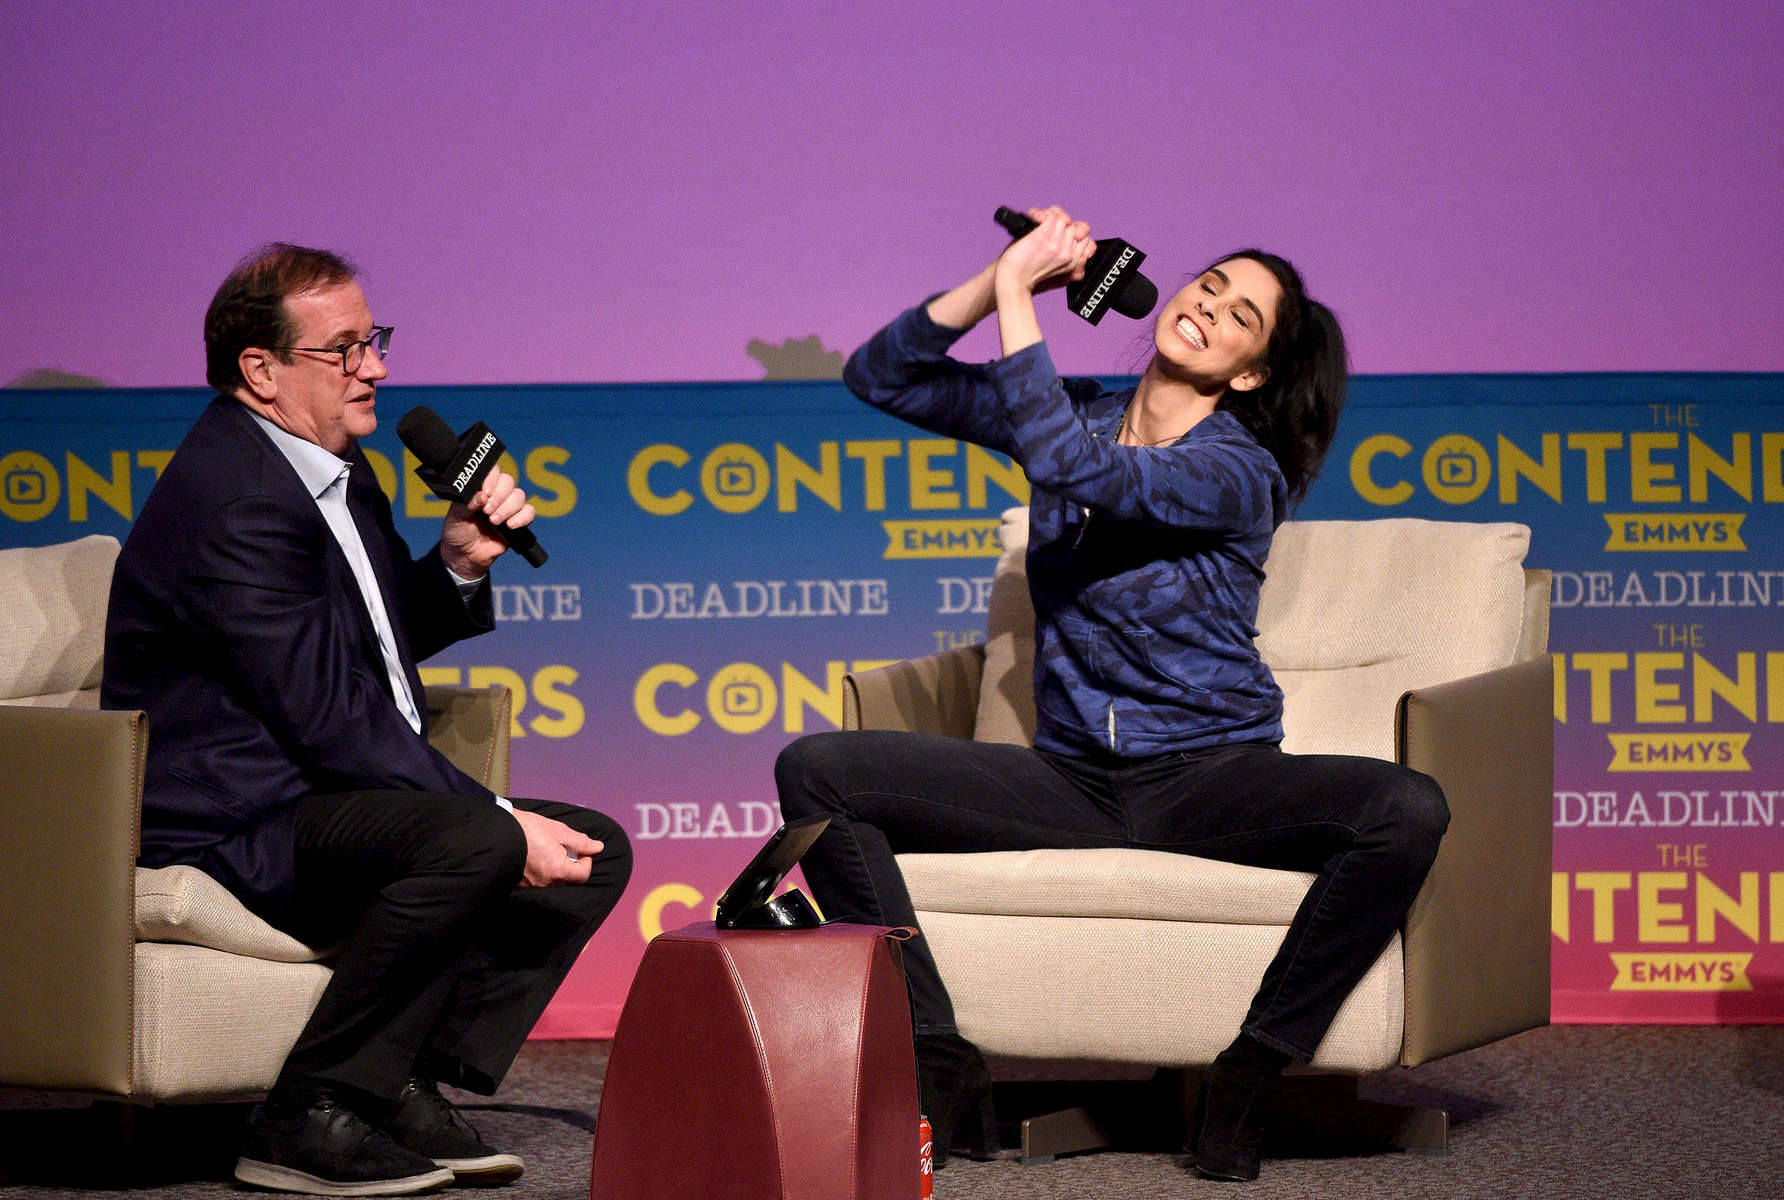 Mandatory Credit: Photo by Stewart Cook/Deadline/REX/Shutterstock (9629834c)Sarah Silverman and Pete HammondHulu 'I Love You, America' presentation, The Contenders Emmys presented by Deadline Hollywood, Los Angeles, USA - 15 Apr 2018